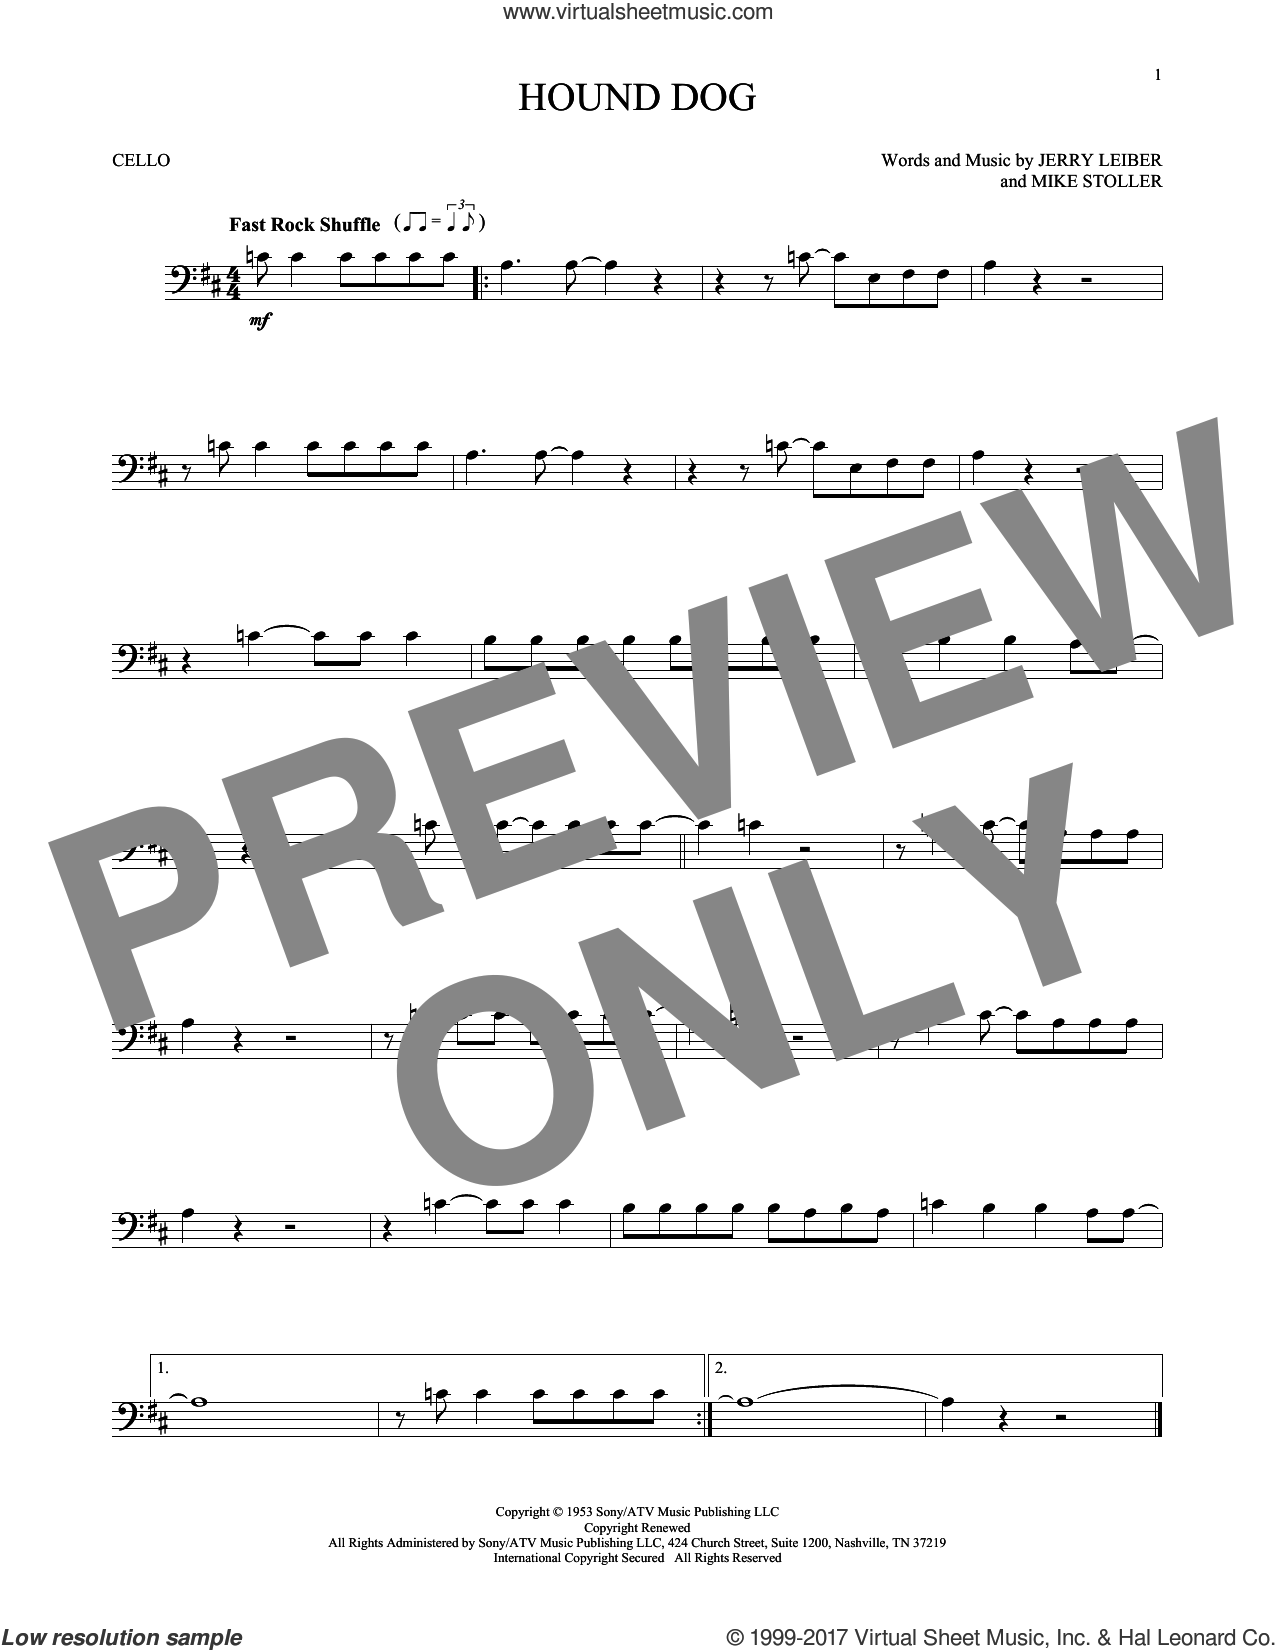 Hound Dog sheet music for cello solo by Elvis Presley, Jerry Leiber and Mike Stoller, intermediate skill level